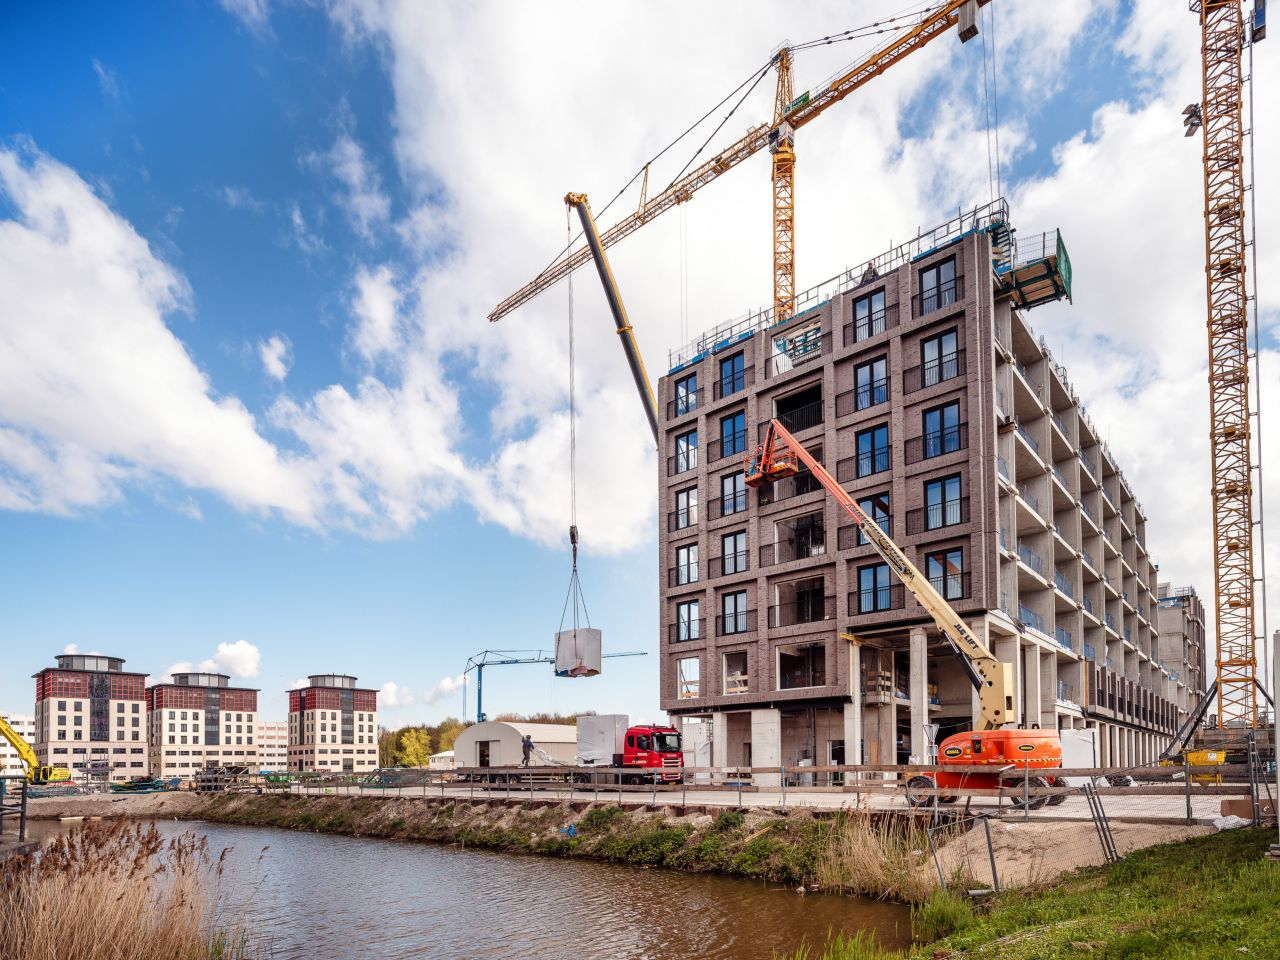 Construction site of the Ourdomain new build apartments in Amsterdam, Netherlands